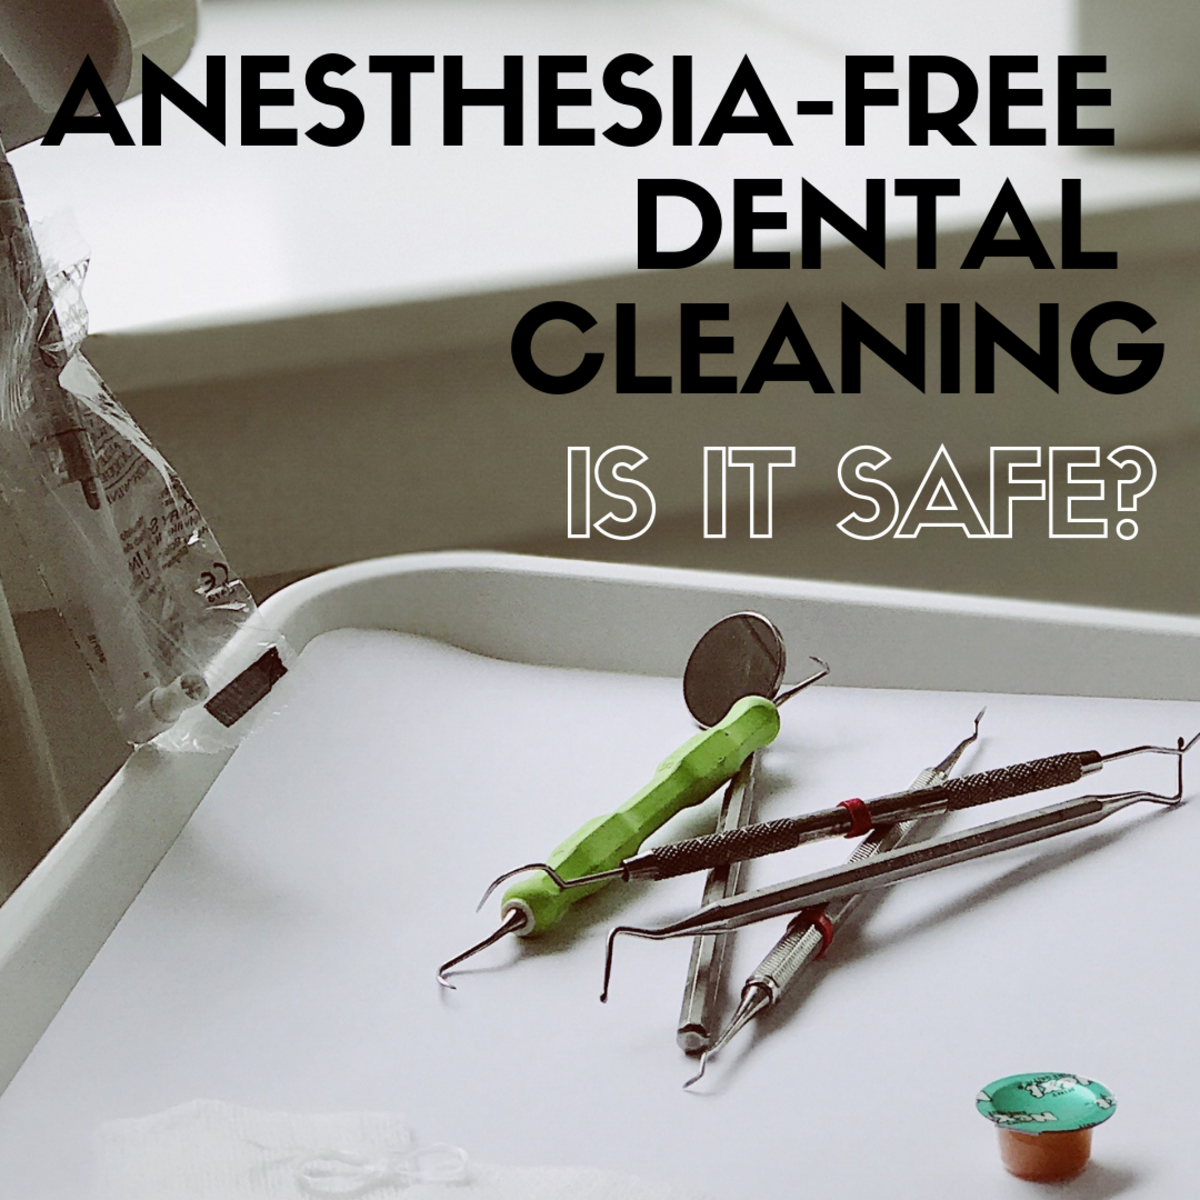 Does your dog need a non-anesthesia dental cleaning?